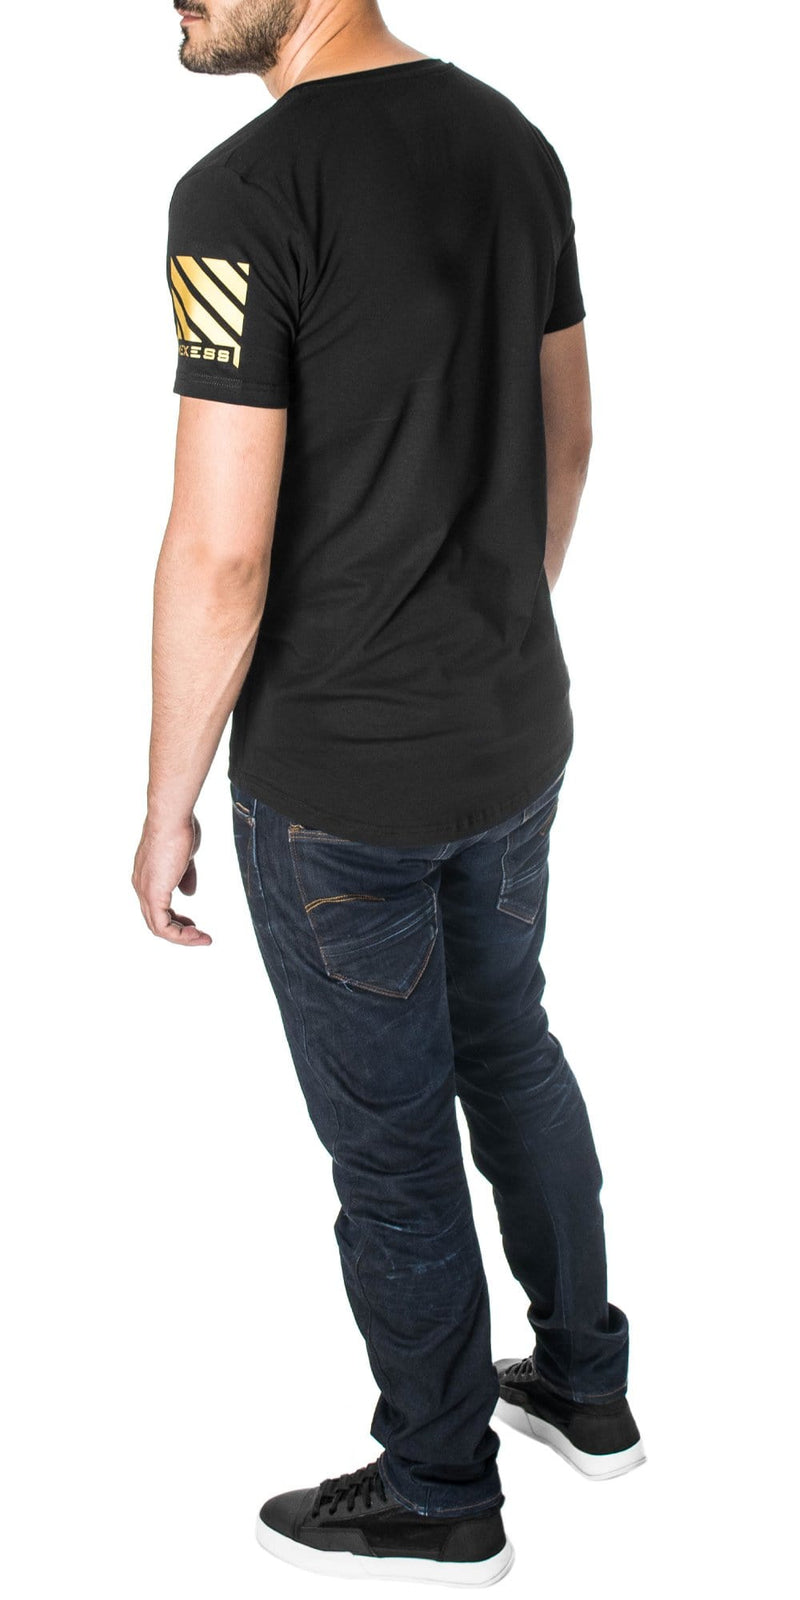 longline graphic tees Mexess